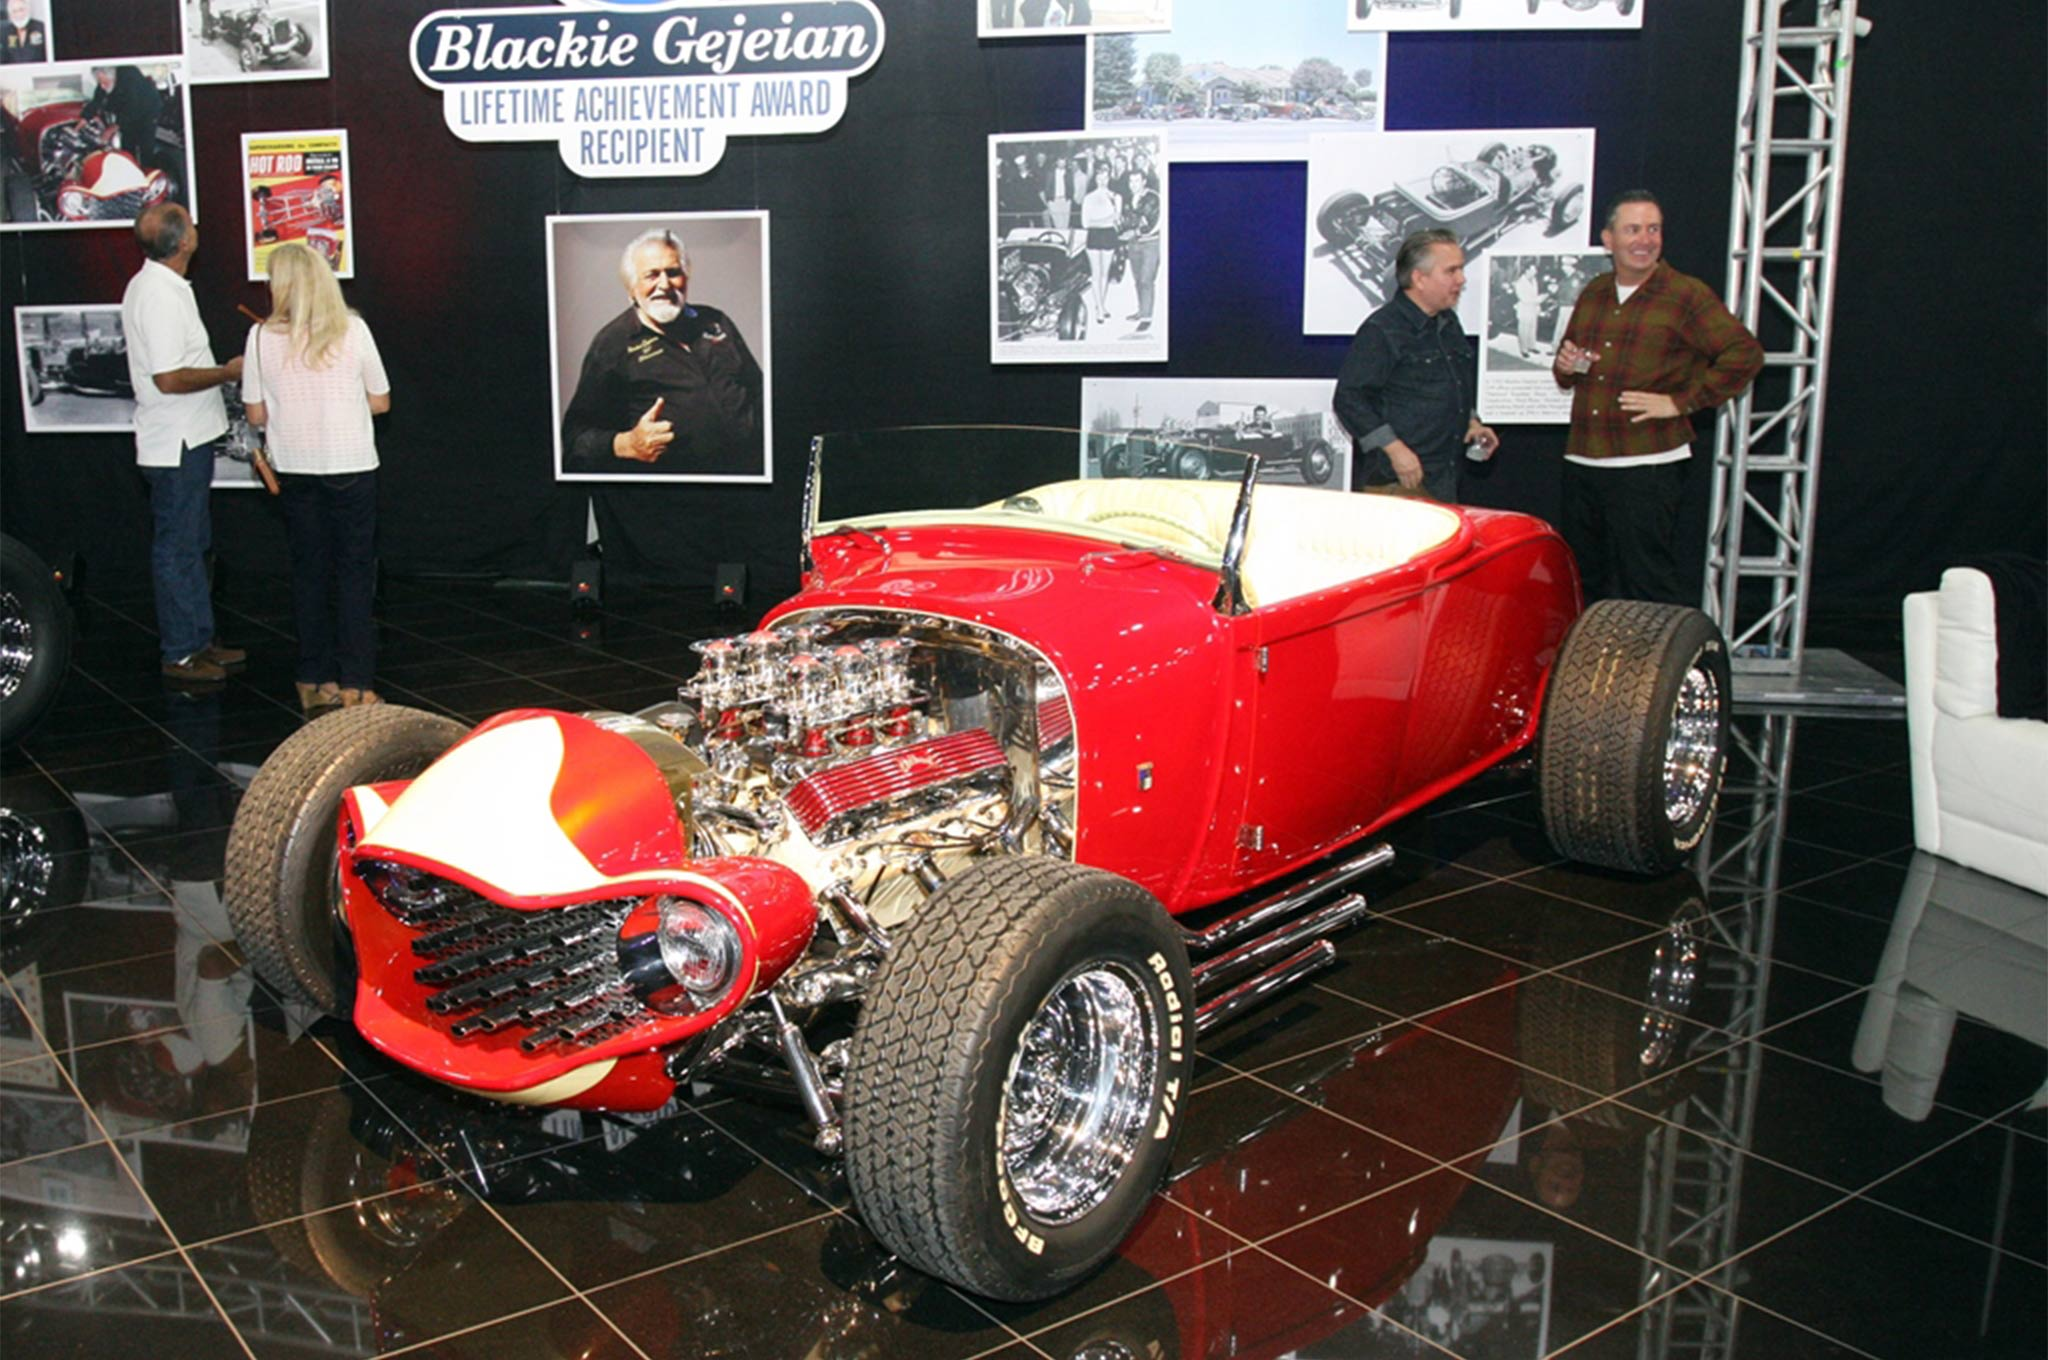 The Emperor was built by Blackie and Richard Peters of Ala Kart fame. The 1929 Ford roadster, owned by Chuck Krikorian won the America's Most Beautiful Roadster prize in 1960. Blackie owns it now.